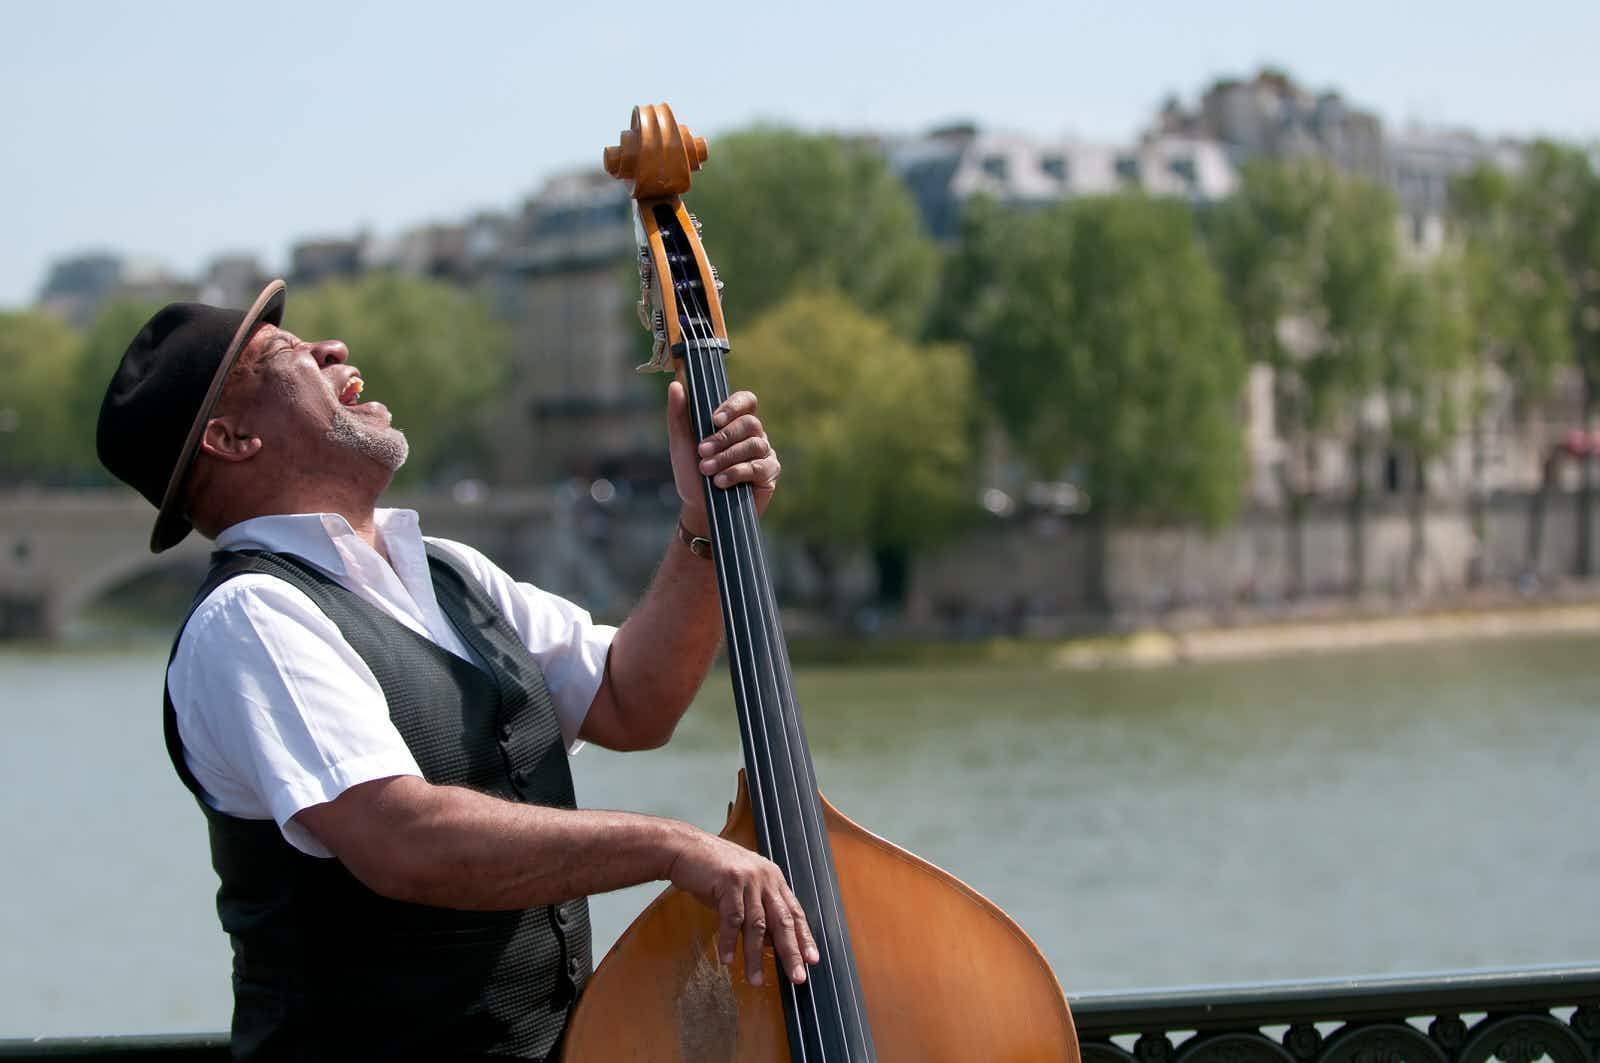 Rhapsody in bleu: a history of jazz in Paris - Lonely Planet